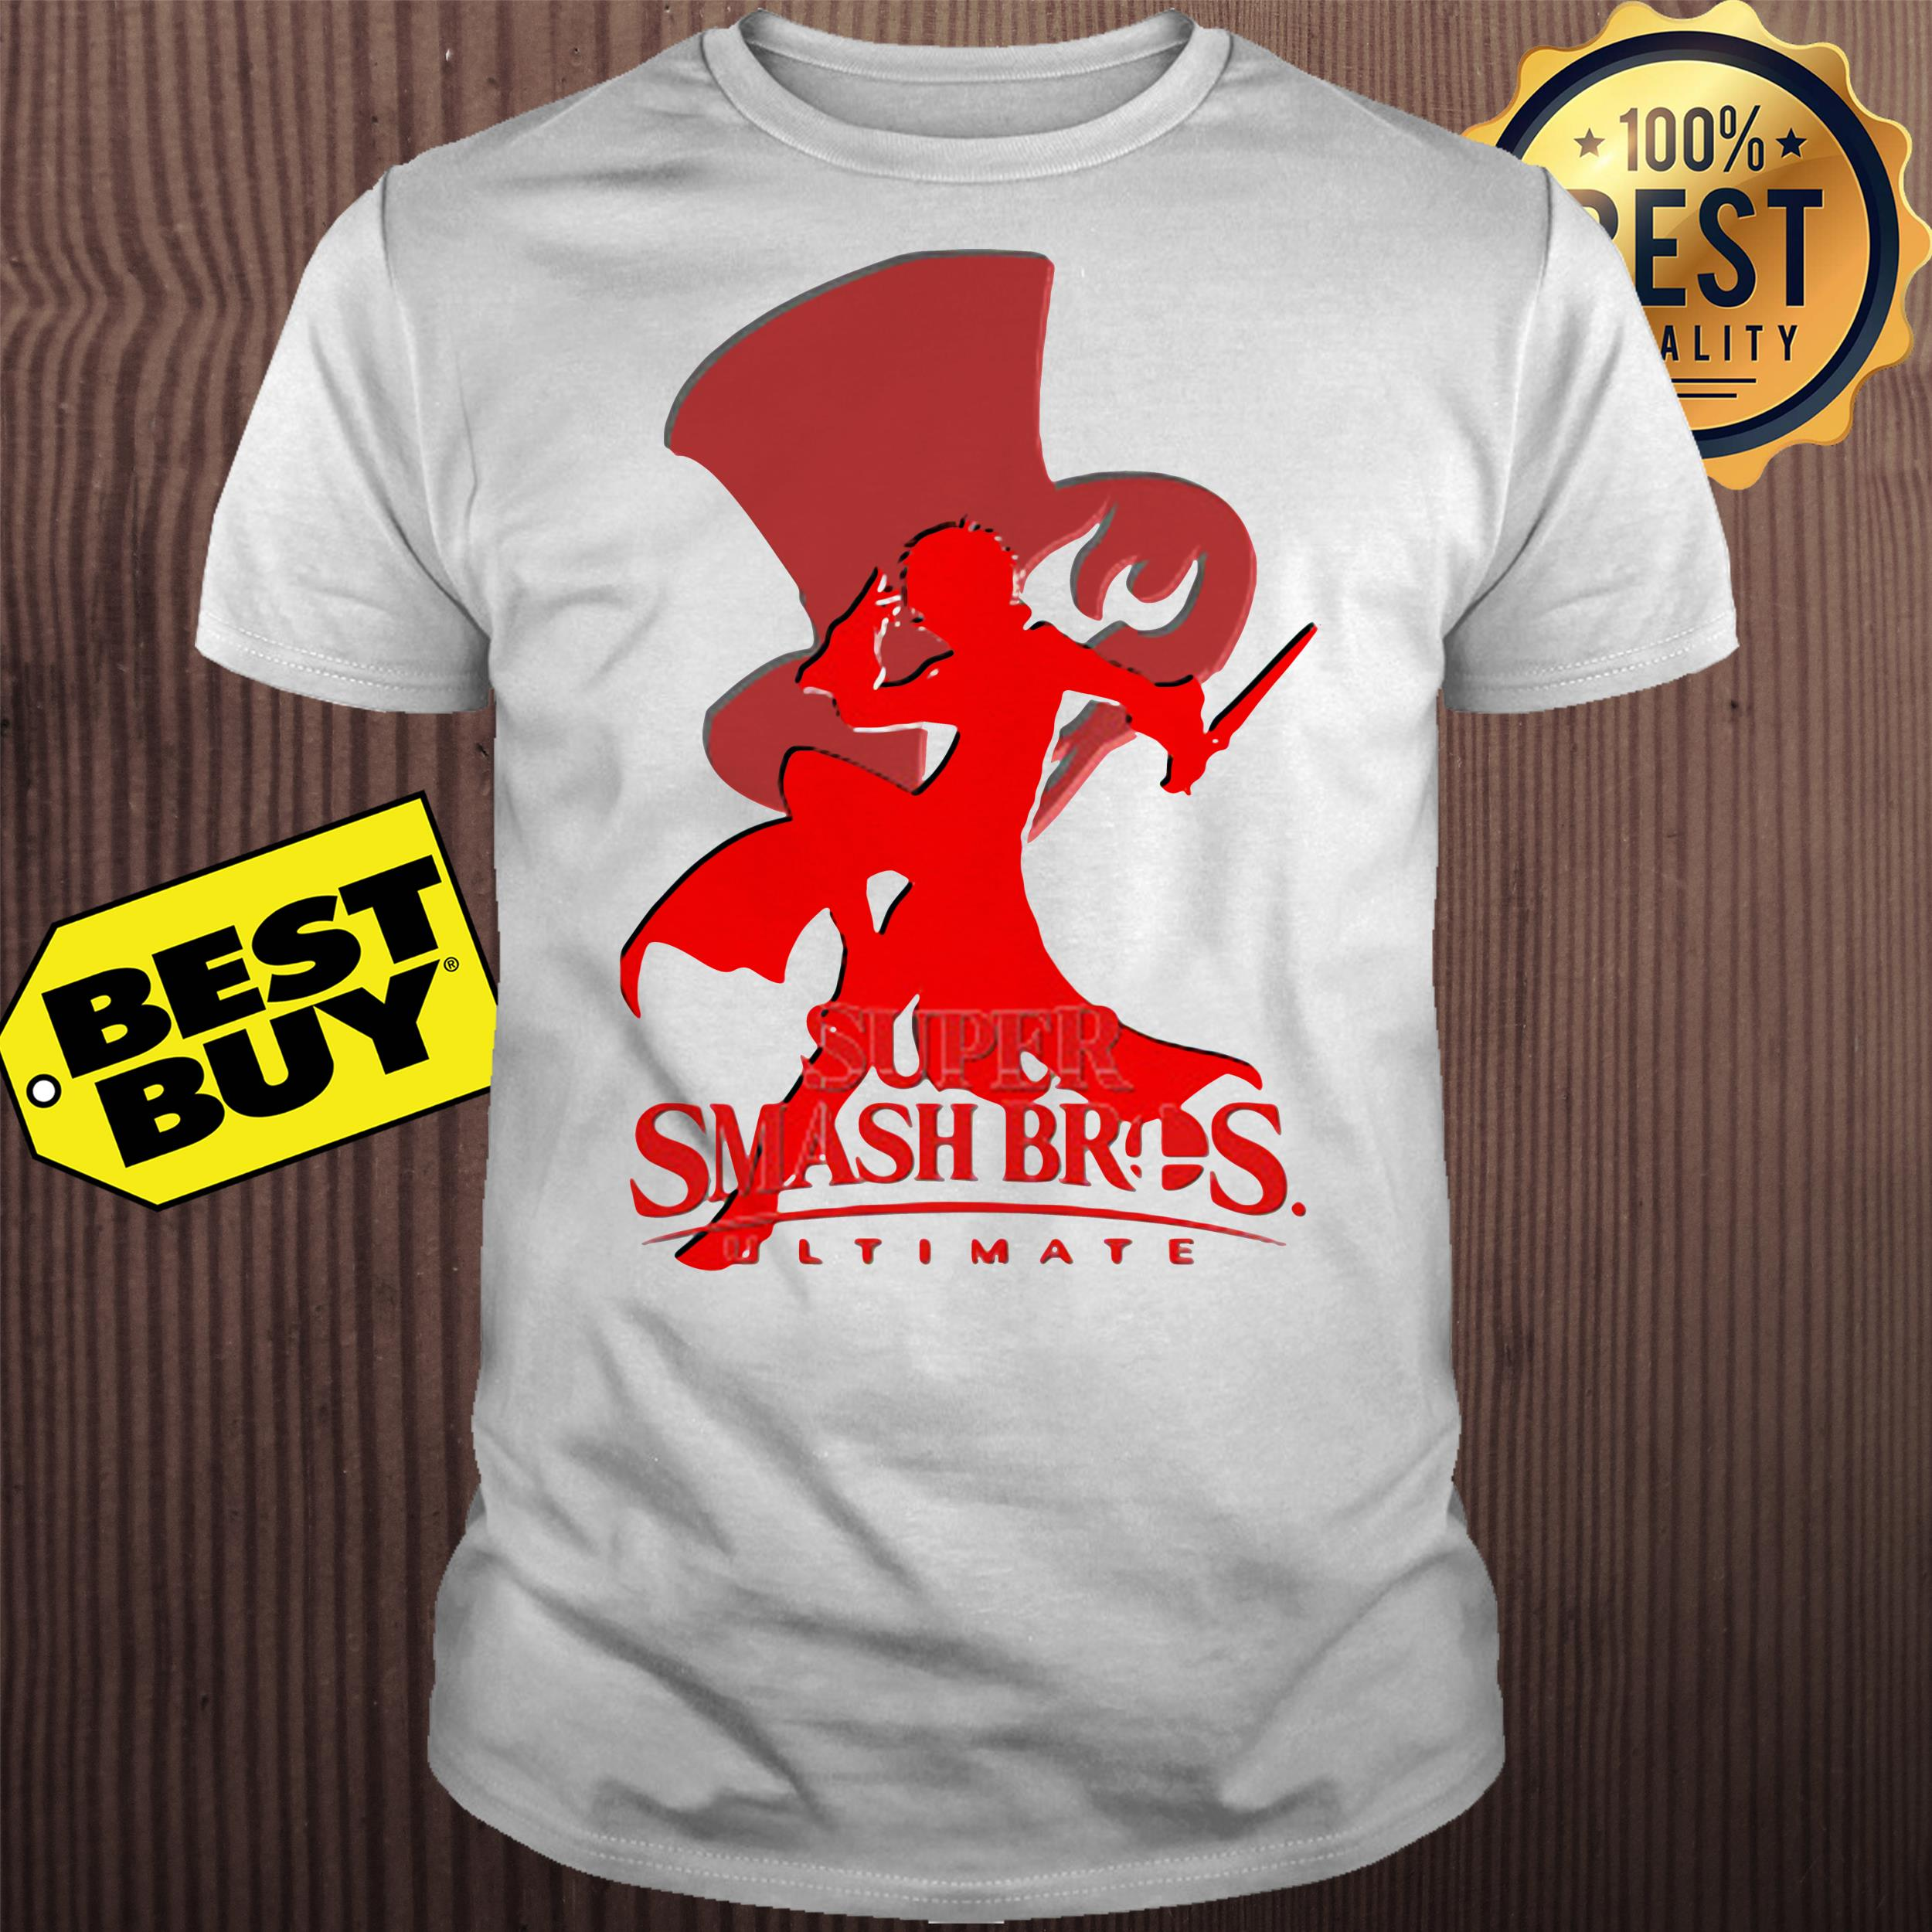 Joker Silhouette Crew Neck super smash bros ultimate shirt